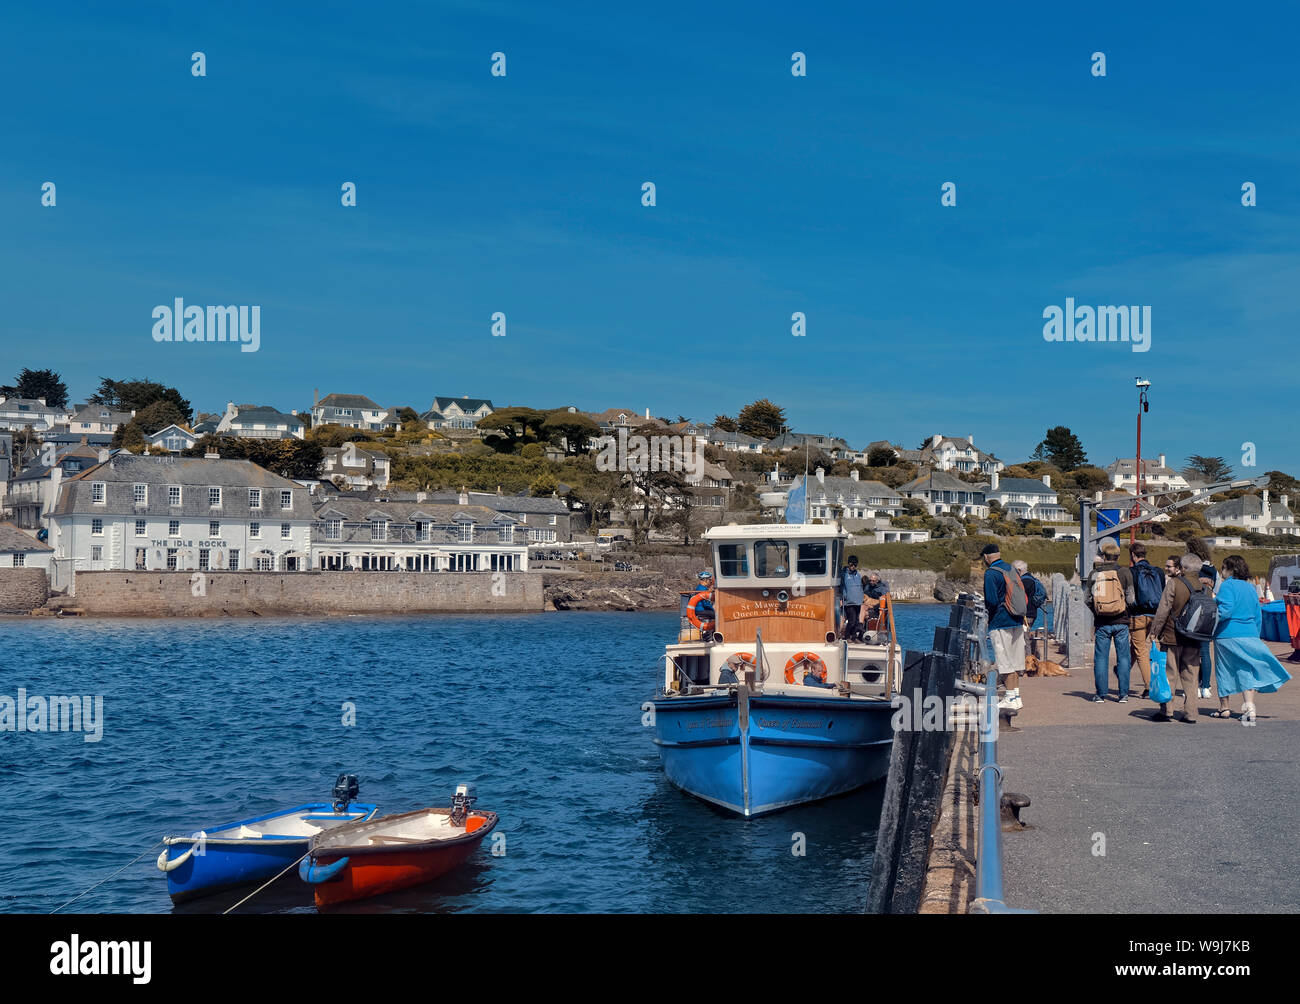 Embarkation on Queen of Falmouth ferry, St. Mawes, Cornwall Stock Photo